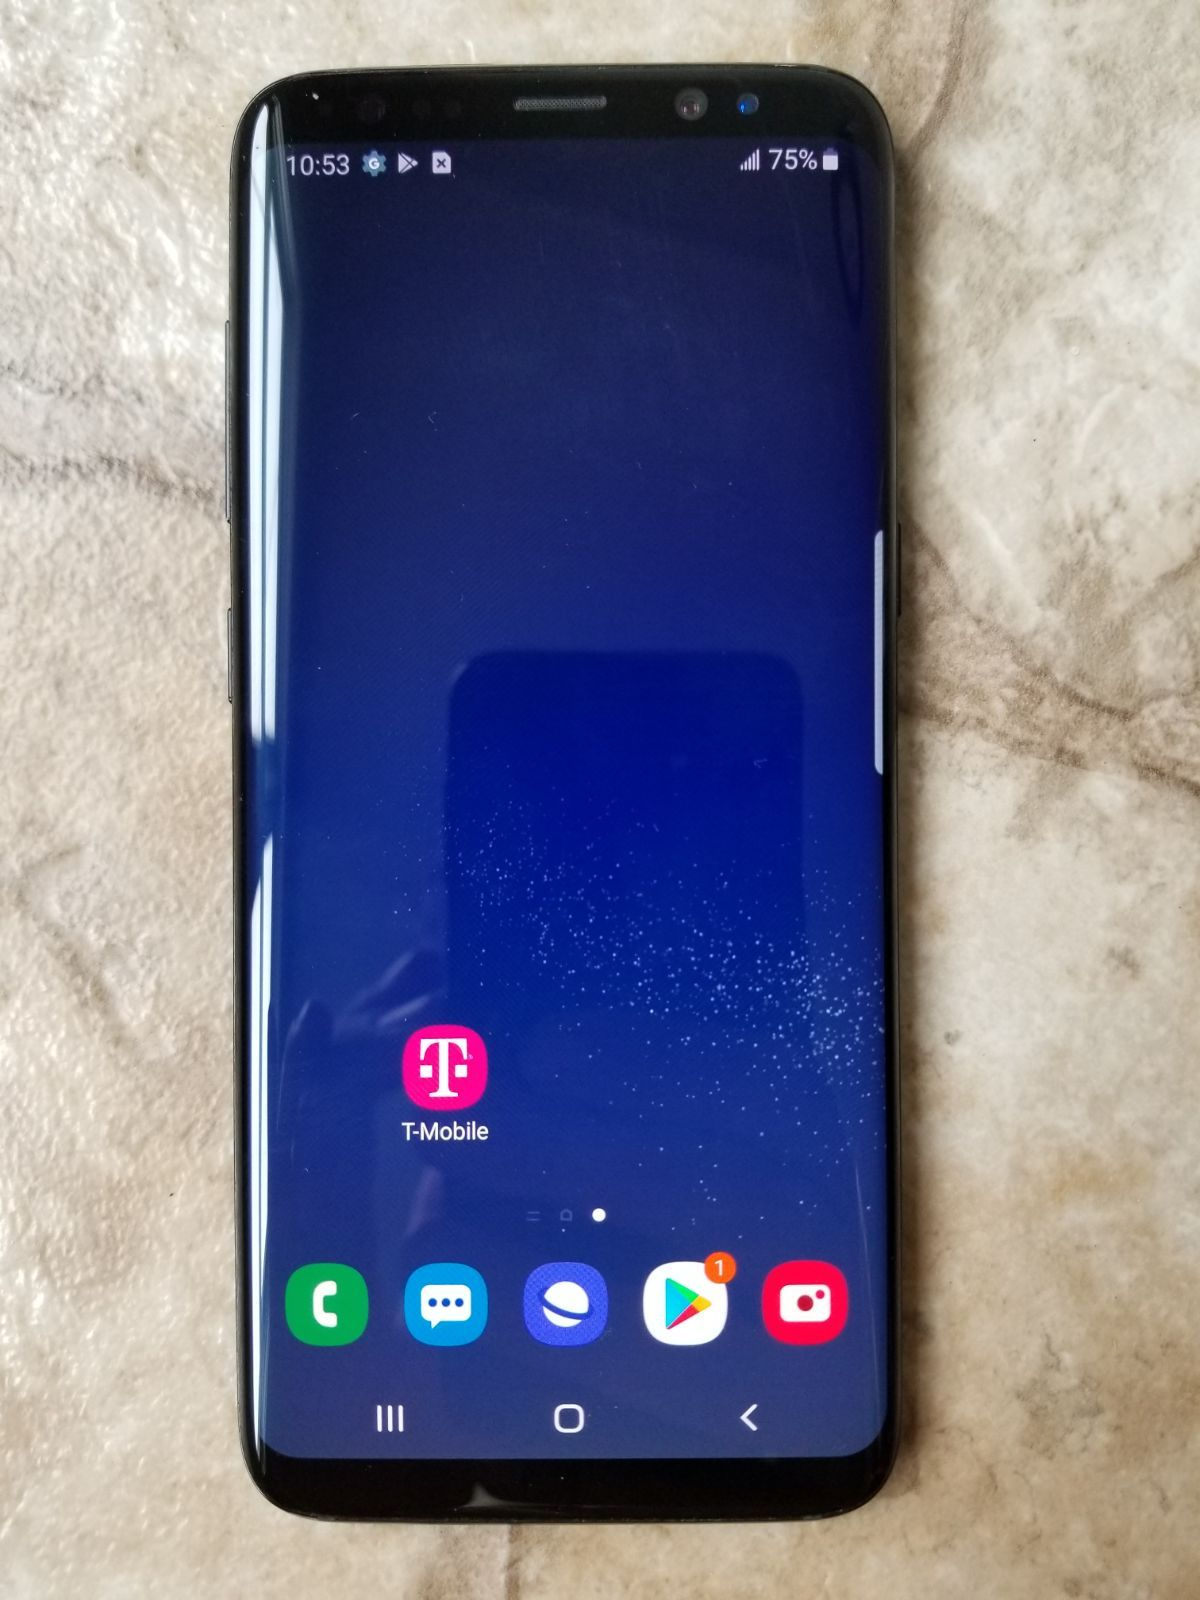 Samsung Galaxy S8 in very good condition. It works great